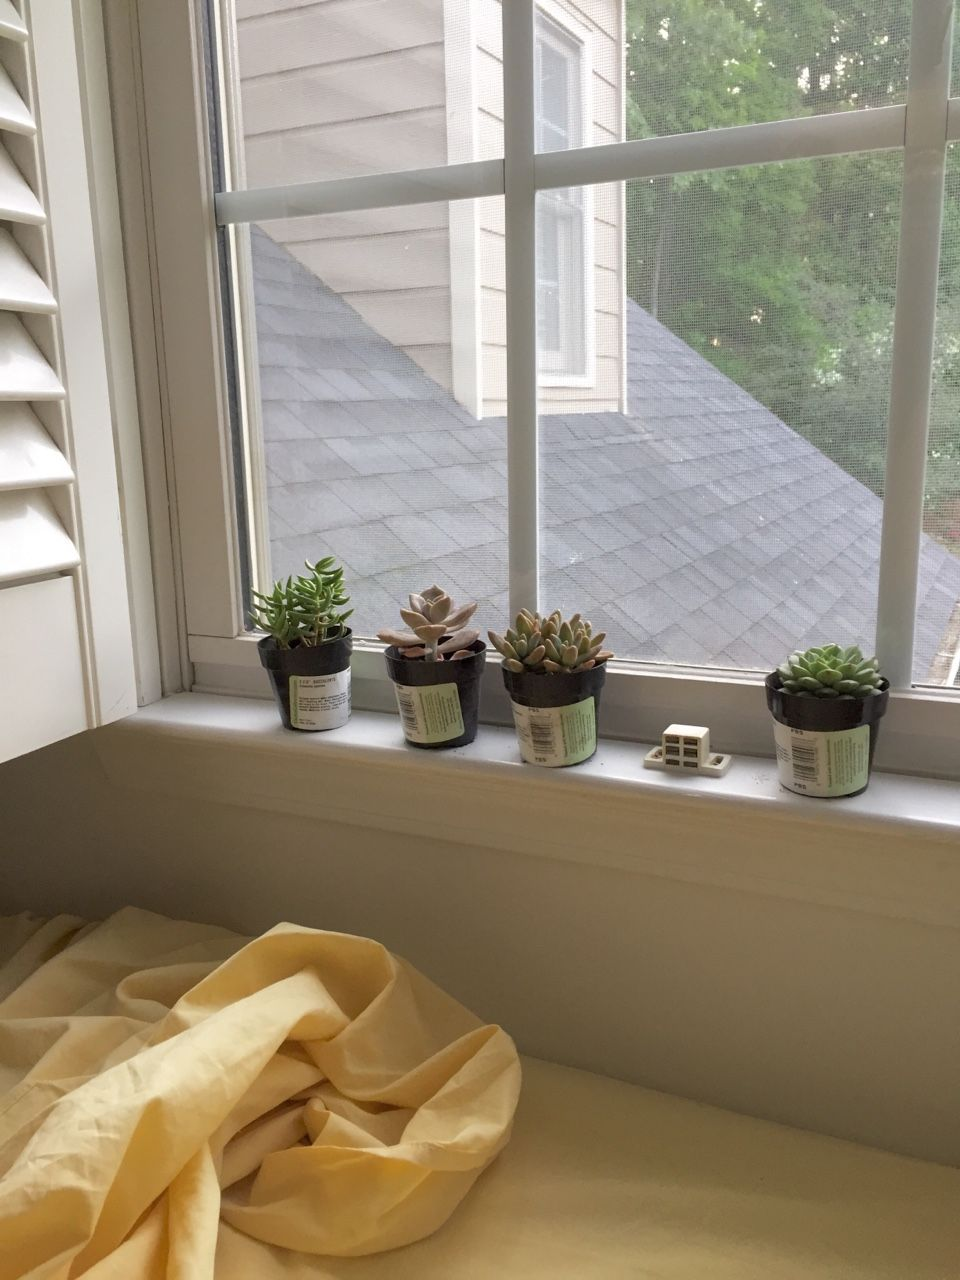 Aesthetic White Bedroom With Plants